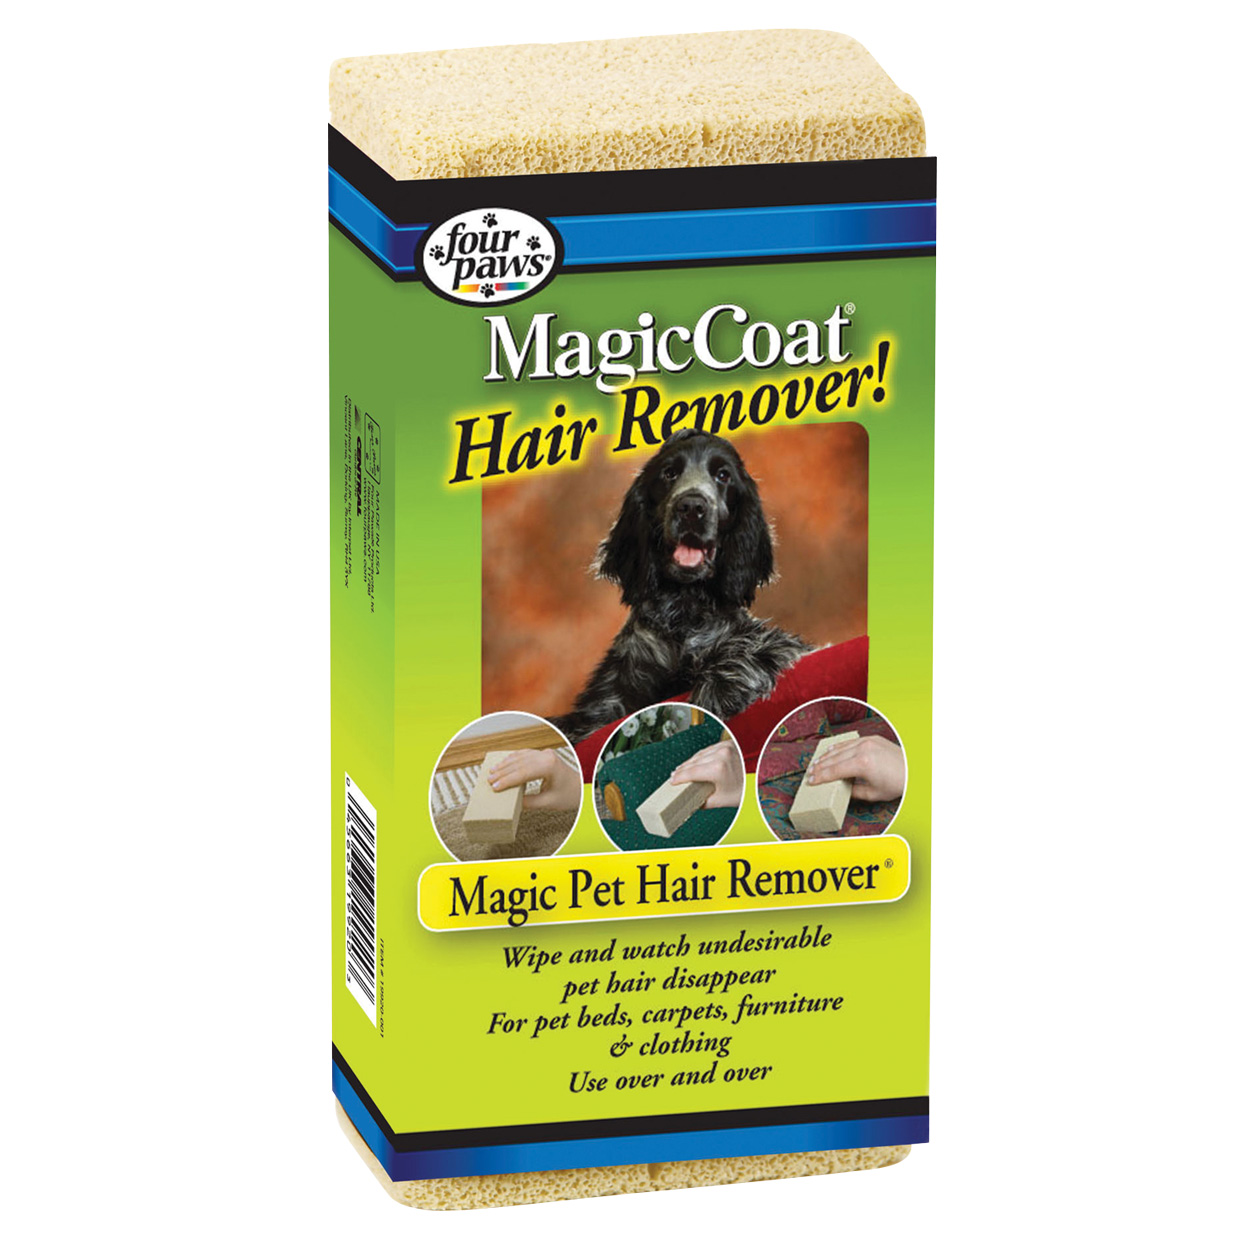 Four Paws Magic Coat Hair Remover! 26795